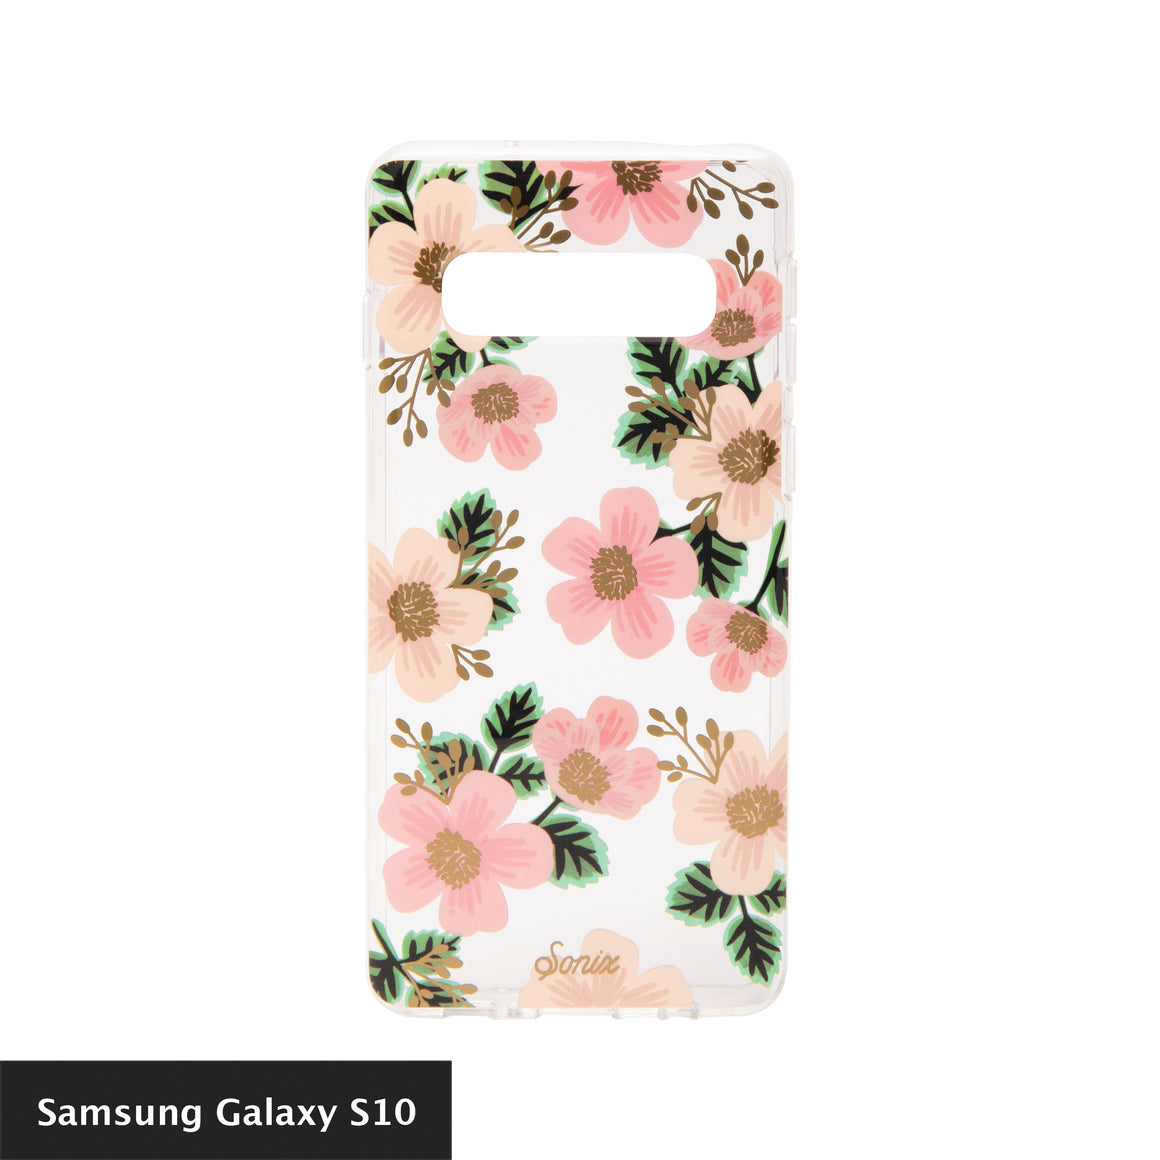 Southern Floral, Samsung Galaxy S10